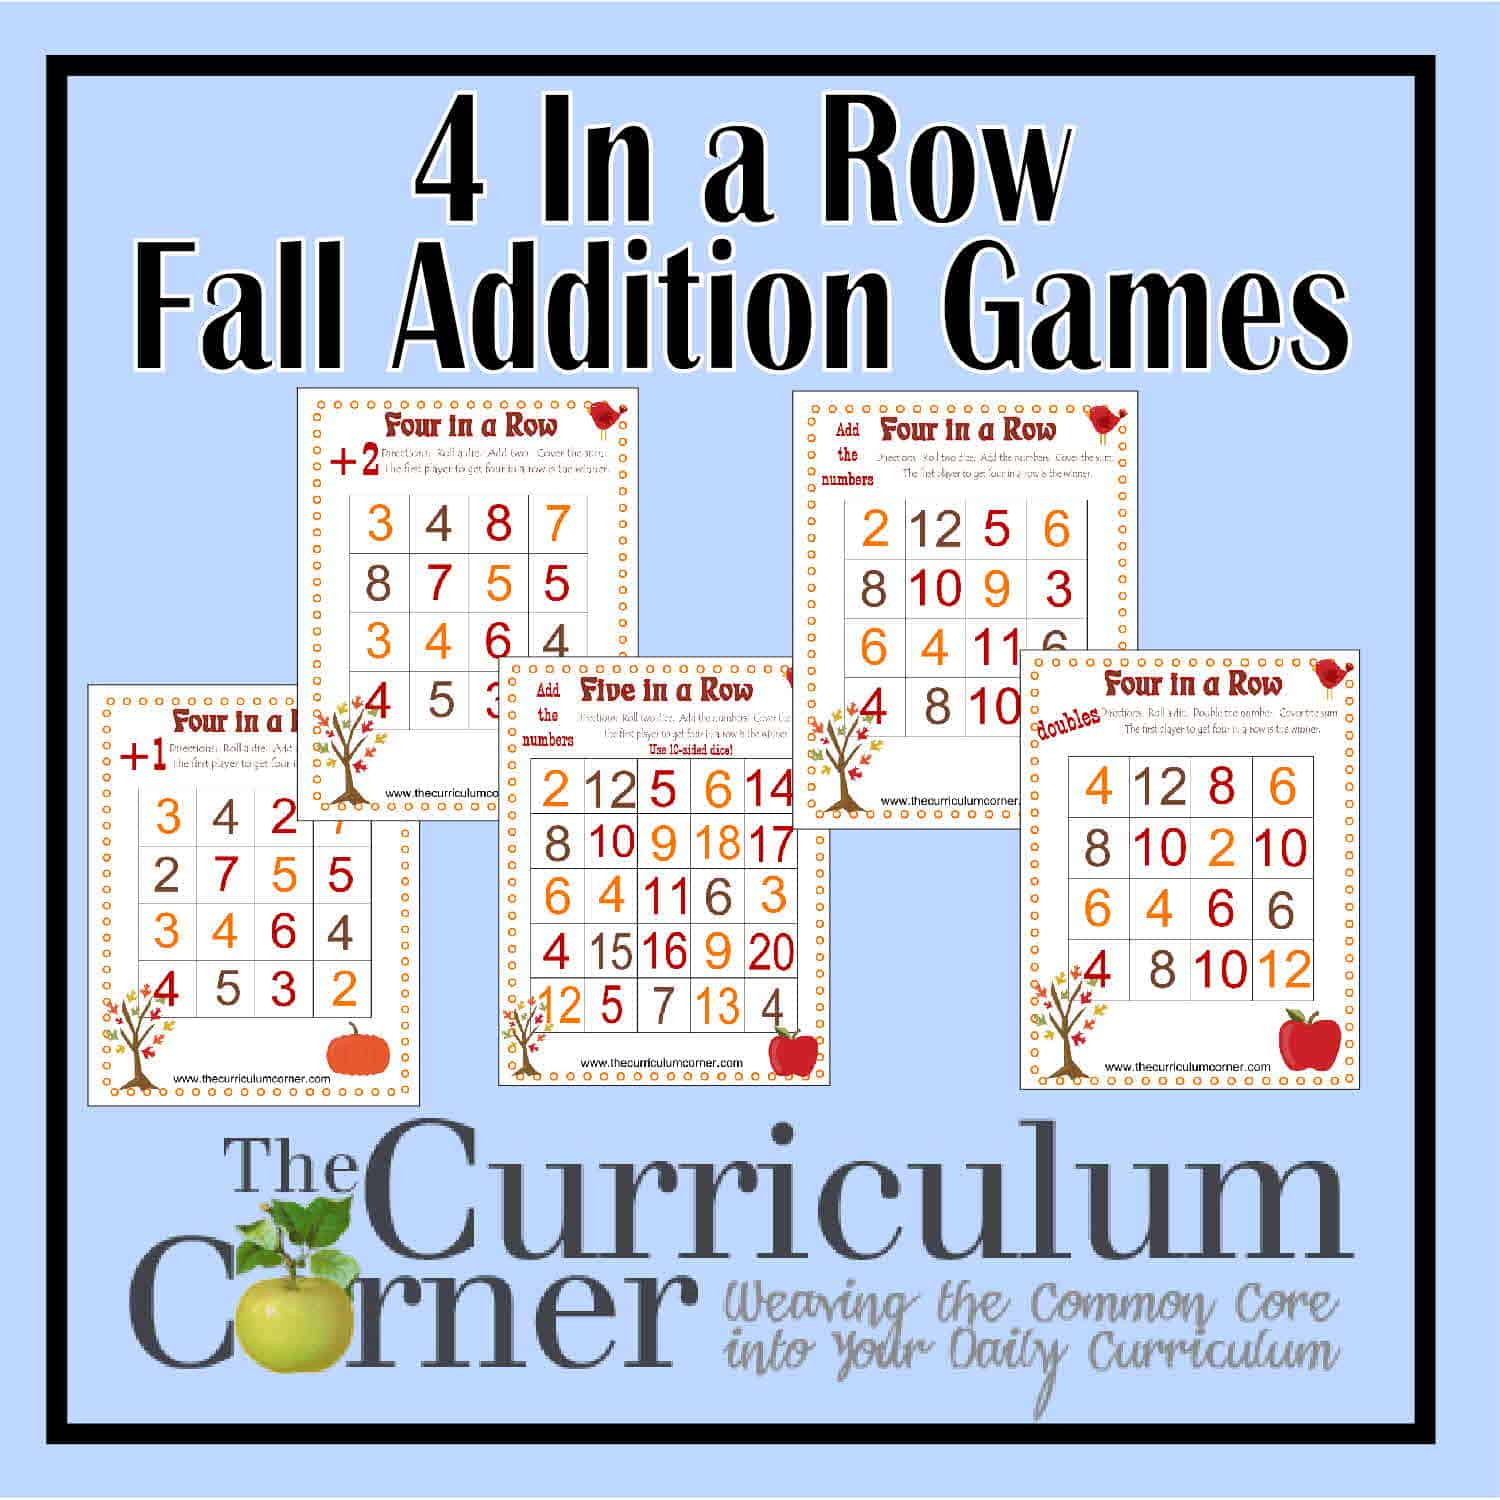 4 In a Row Addition Games for Fall